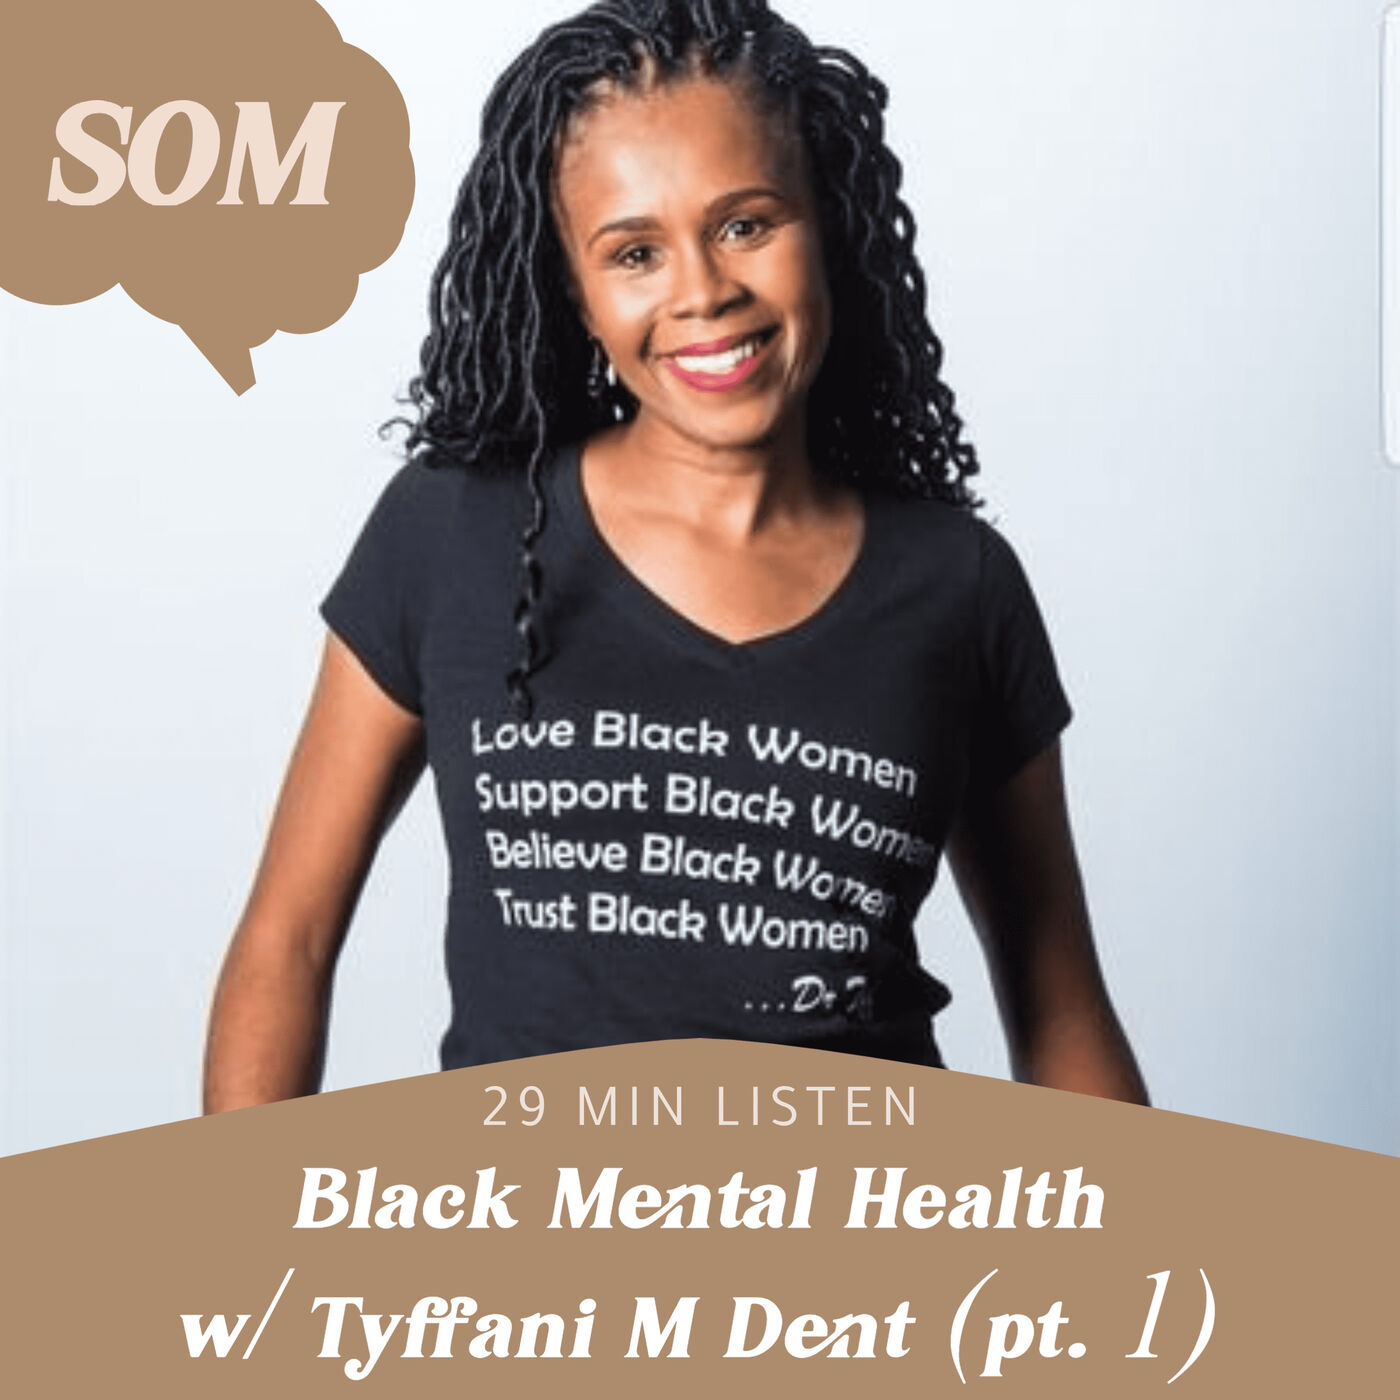 Black Mental Health with Dr. Tyffani M Dent (Part 1)